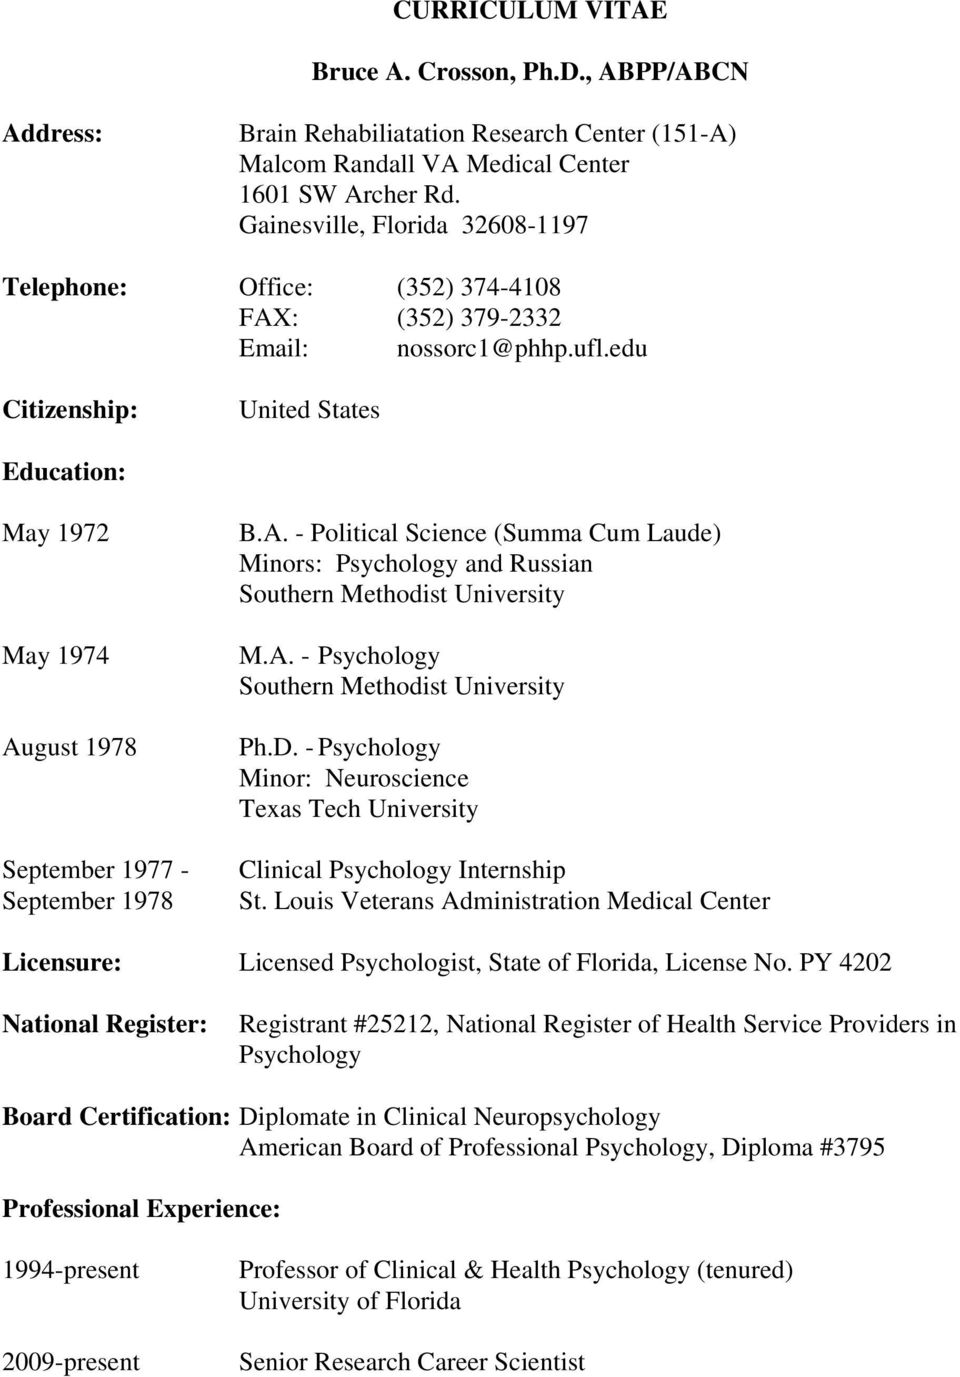 edu Citizenship: United States Education: May 1972 May 1974 August 1978 September 1977 - September 1978 B.A. - Political Science (Summa Cum Laude) Minors: Psychology and Russian Southern Methodist University M.